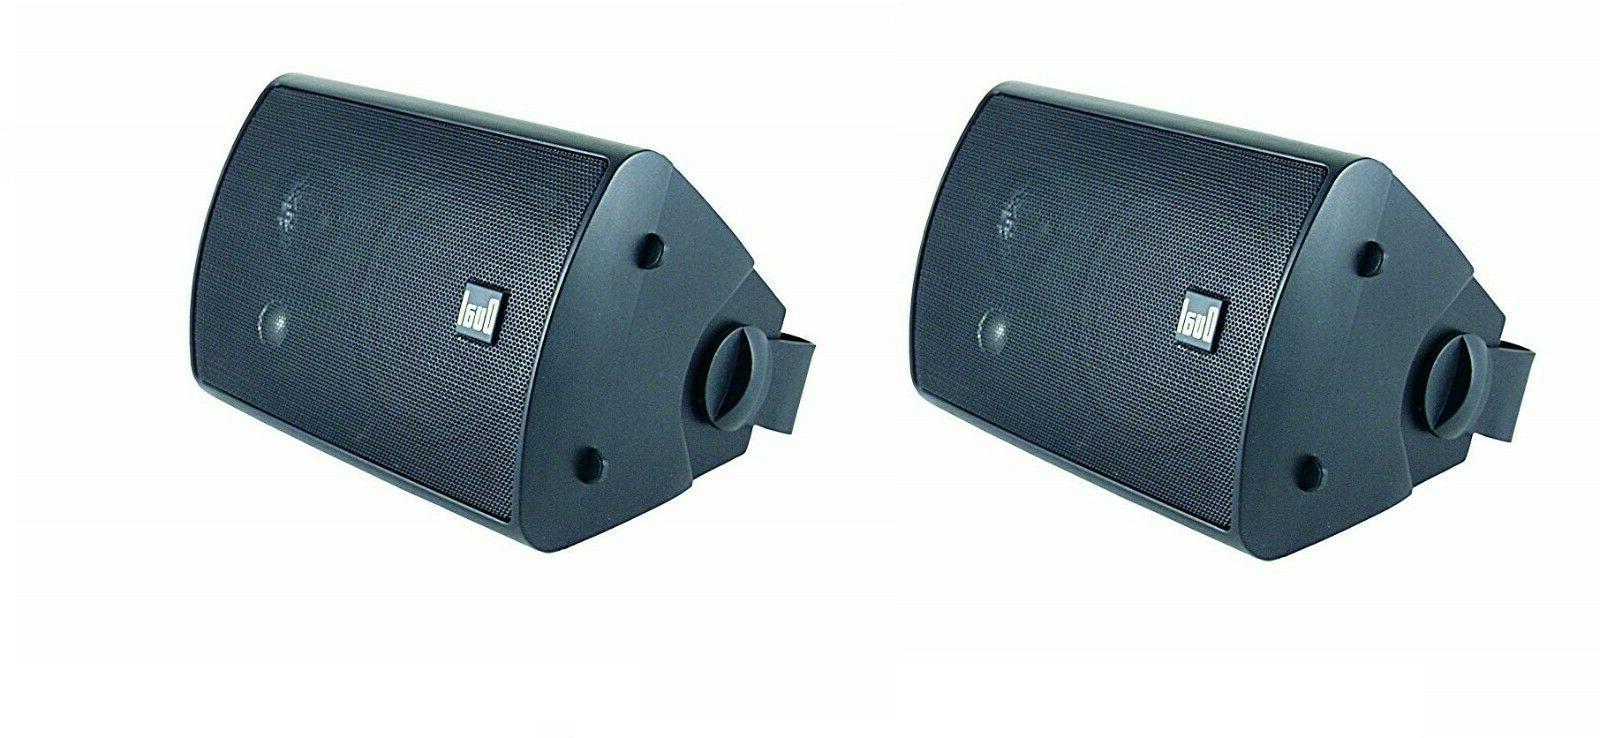 sold in pair 3 way audio indoor